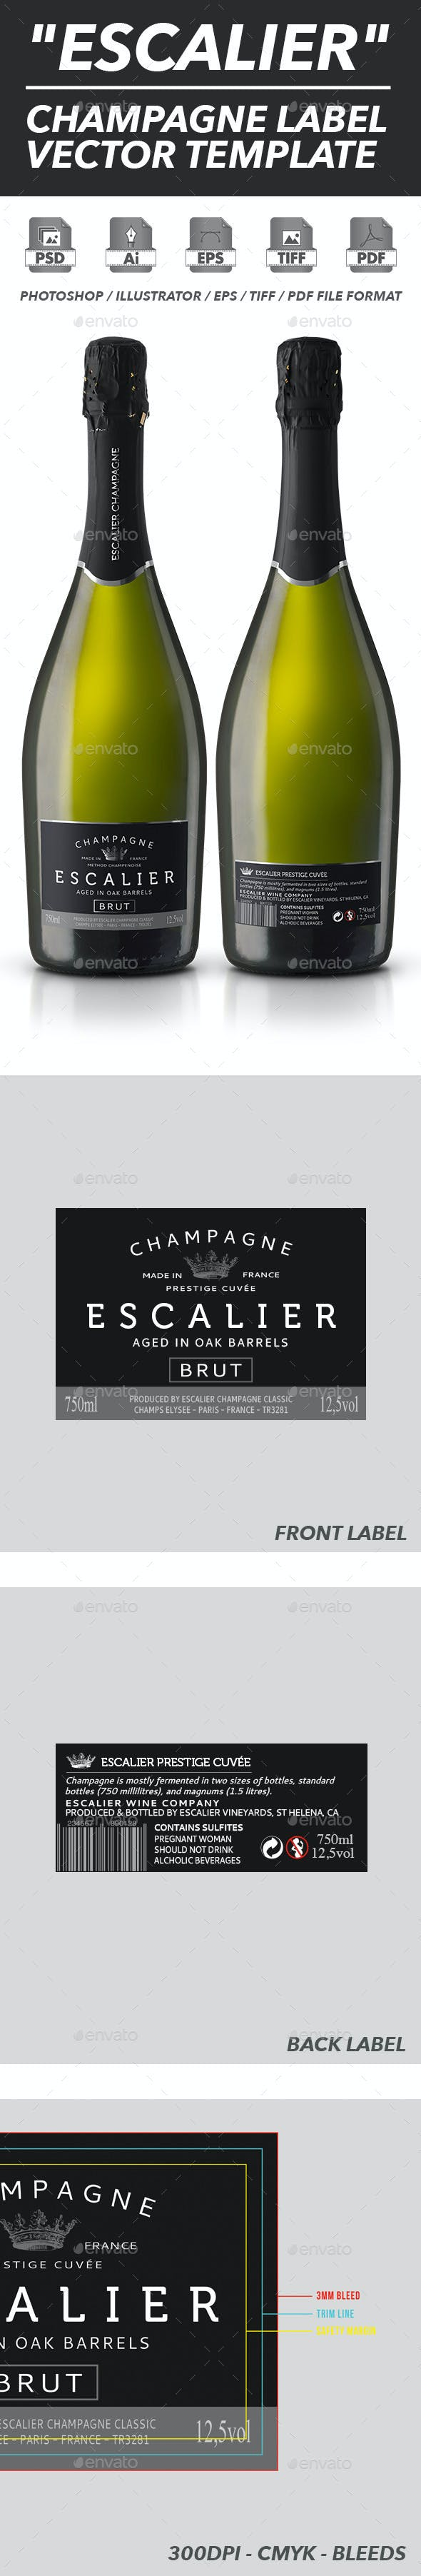 champagne label vector template by shinypixel graphicriver